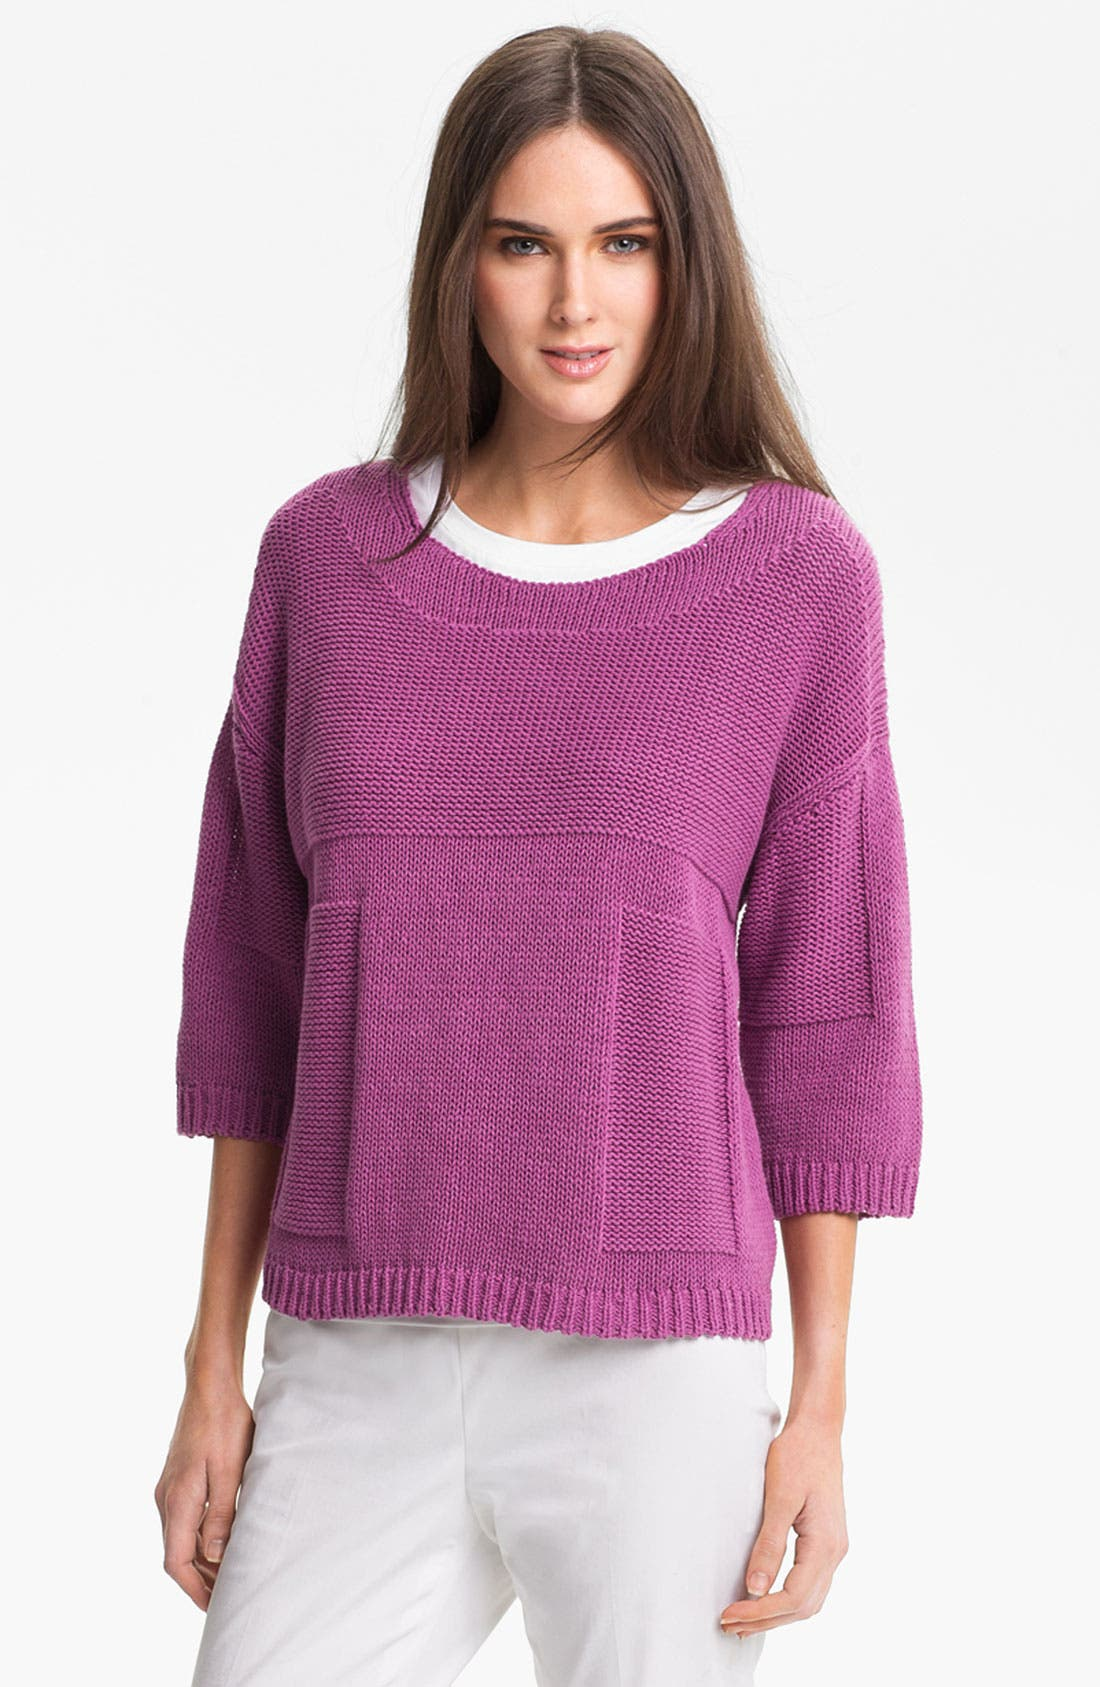 Alternate Image 1 Selected - Lafayette 148 New York 'Essential' Cotton Blend Sweater